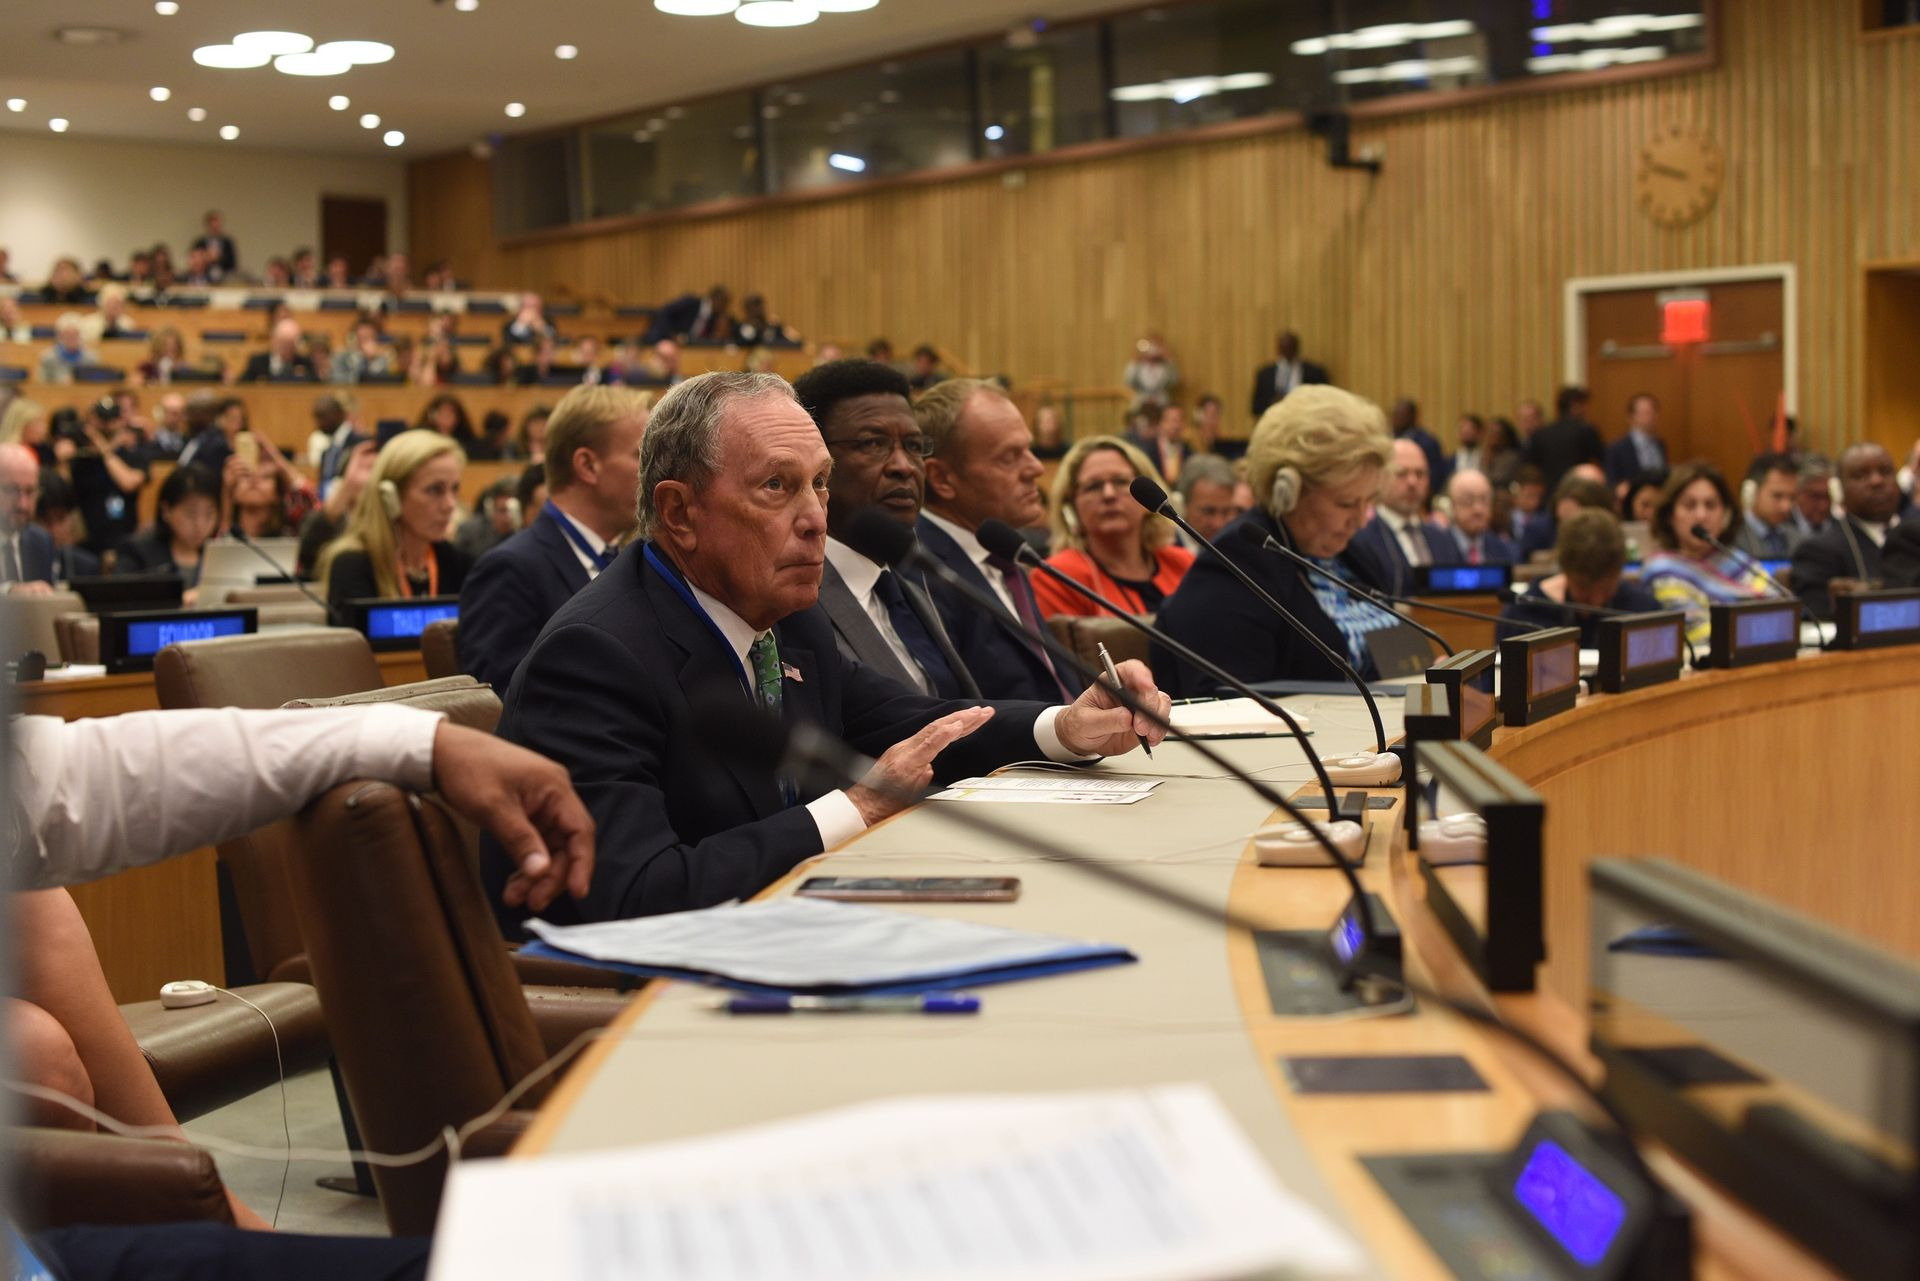 Mike Bloomberg speaks at the UN Climate Action Summit on September 23, 2019 in New York City.